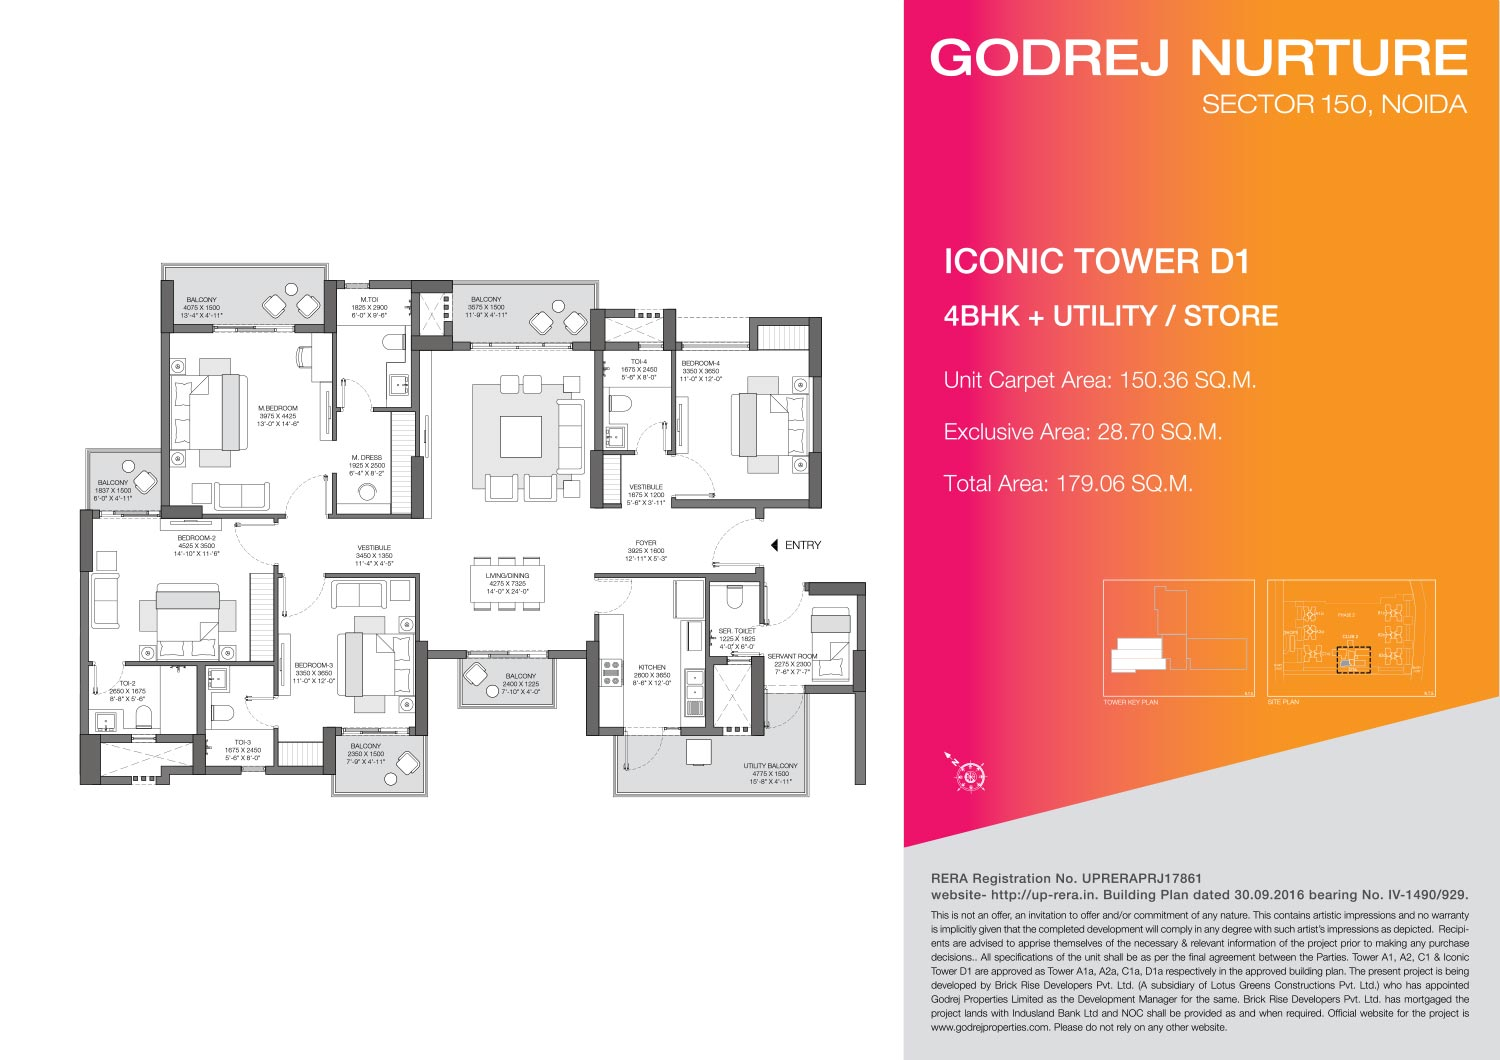 4 BHK + Utility/Store - Iconic Tower D1